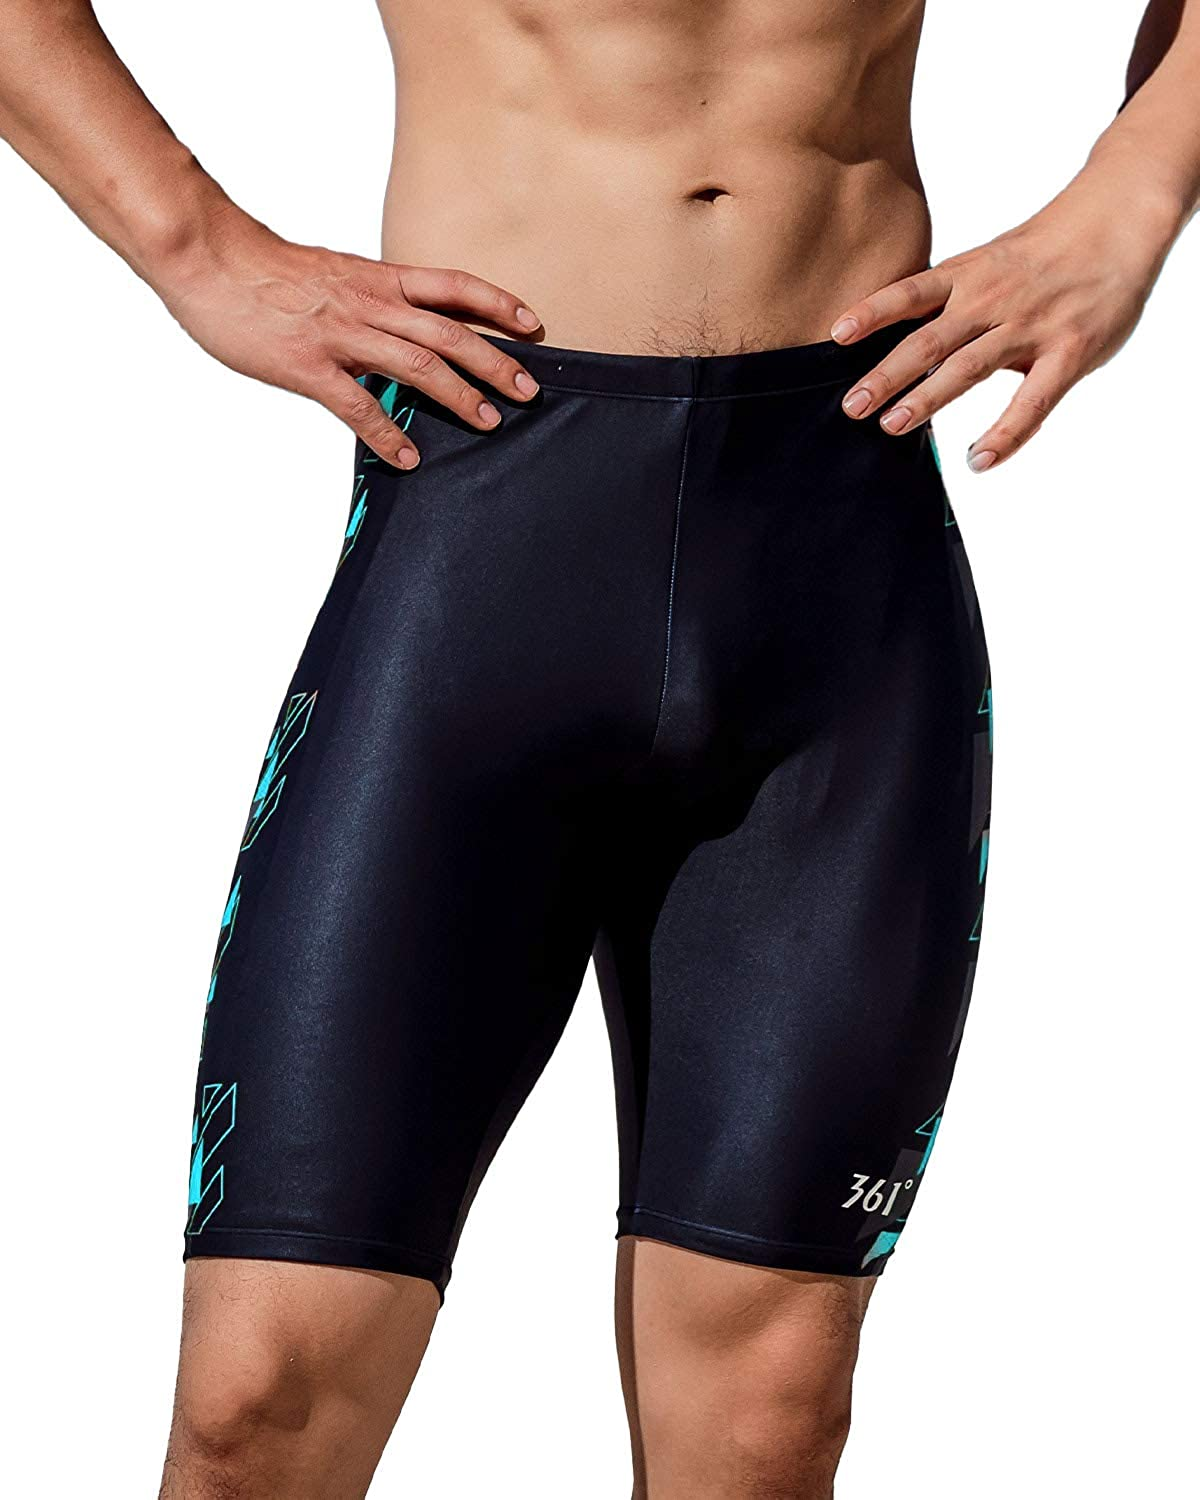 famous 361º Swim Jammers for Men Athle Resistant Max 41% OFF Boys Chlorine Tight